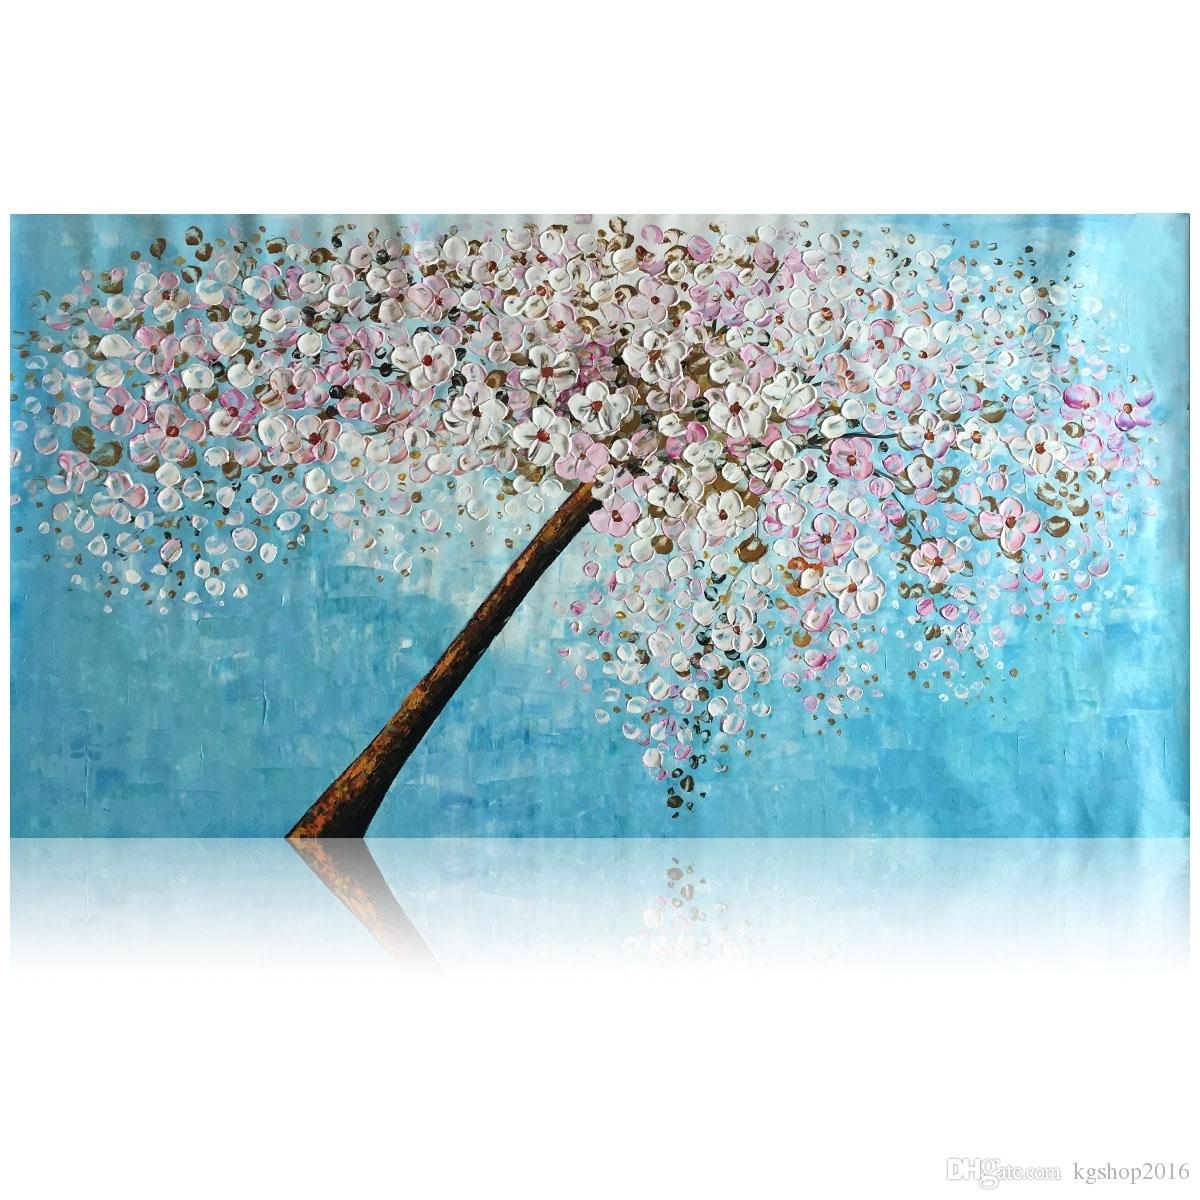 2018 Kgtech Thick Textured Acrylic Paintings 3D Floral Wall Art In Most Current Floral Wall Art (Gallery 3 of 20)